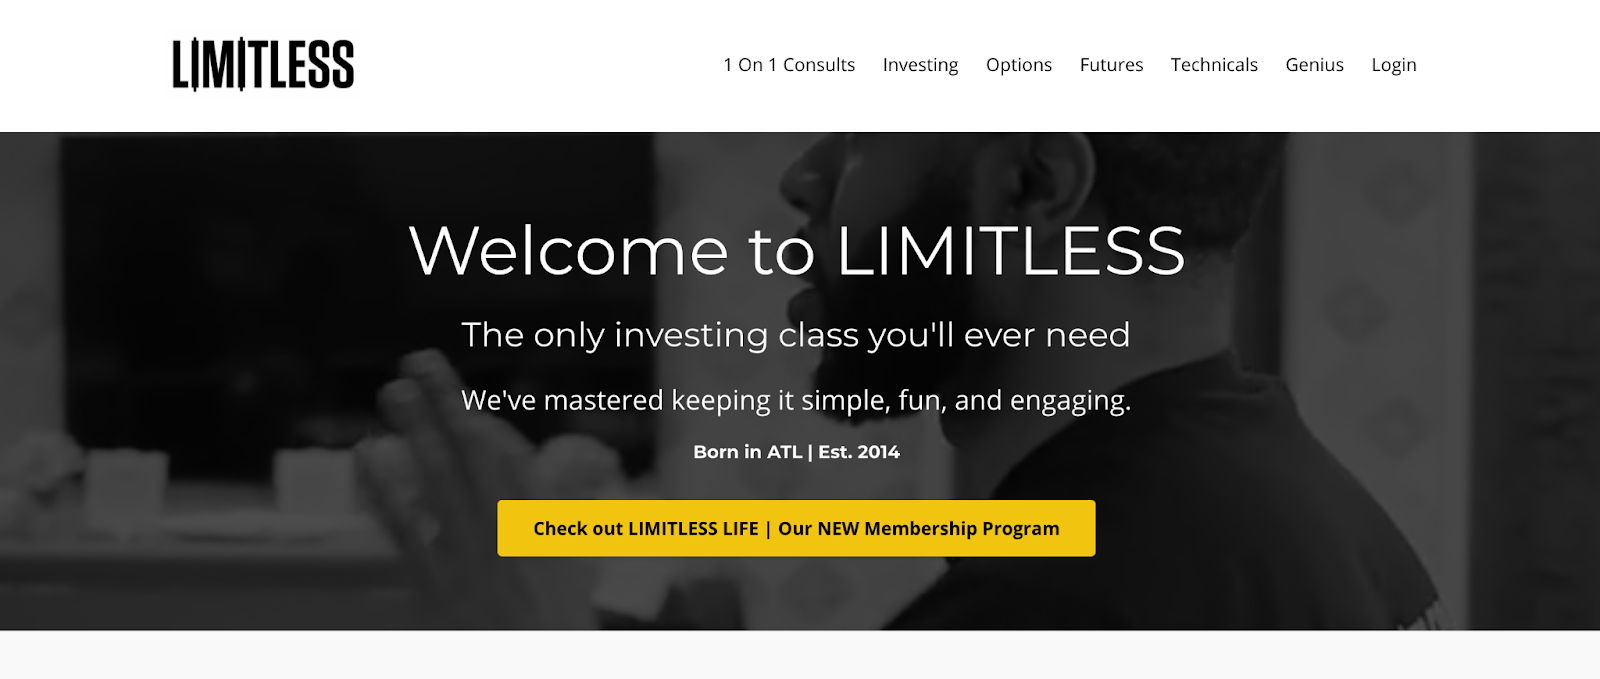 screenshot of the Limitless website defining it as the only investing class you'll ever need with a yellow button to check out the membership program and a black and white photo of Noble Woods